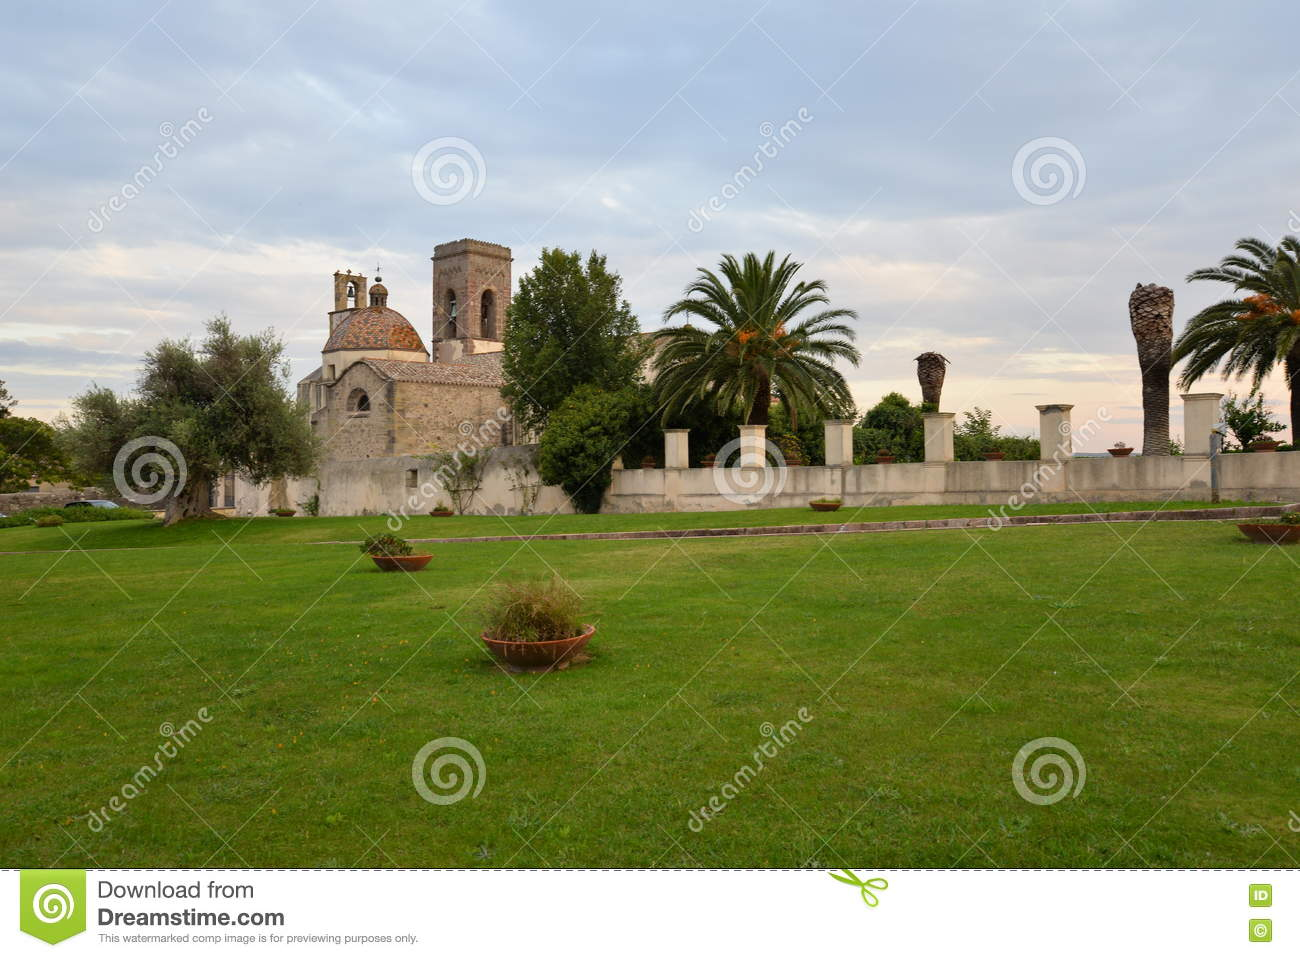 Immacolata church in Barumini, Sardinia, Italy